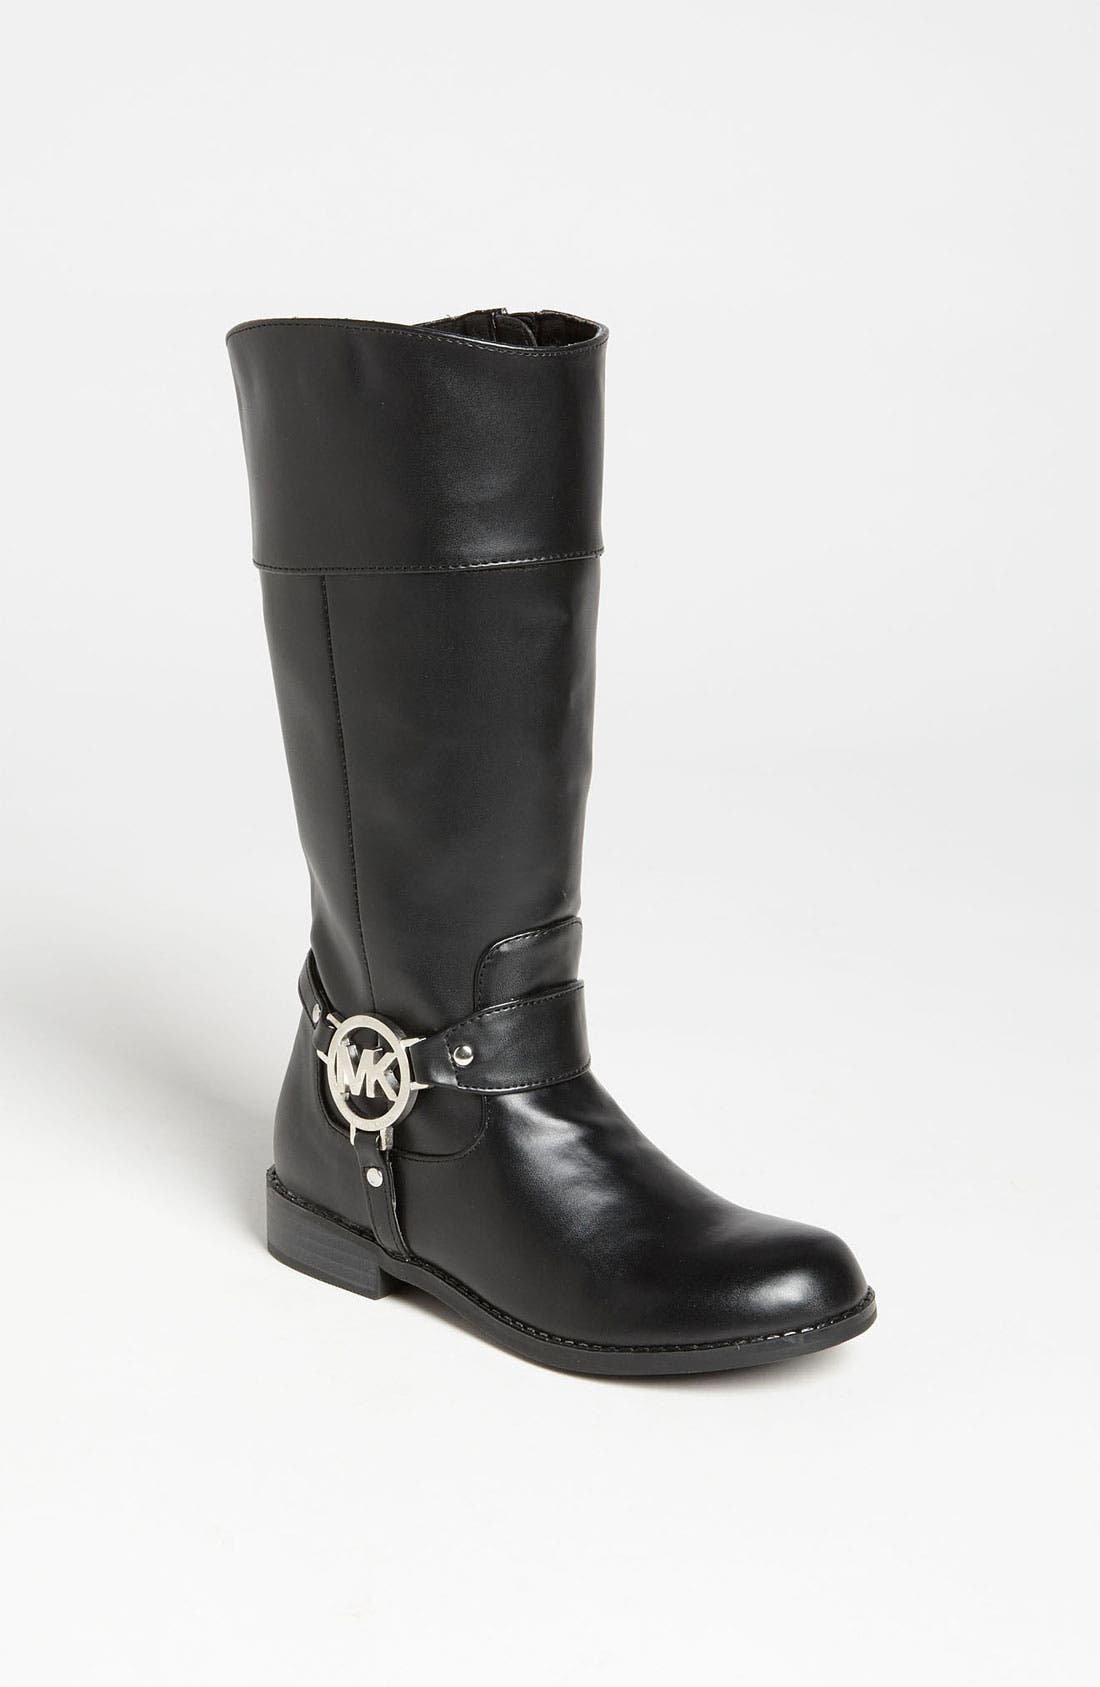 Main Image - MICHAEL Michael Kors 'Bin' Boot (Toddler, Little Kid & Big Kid)